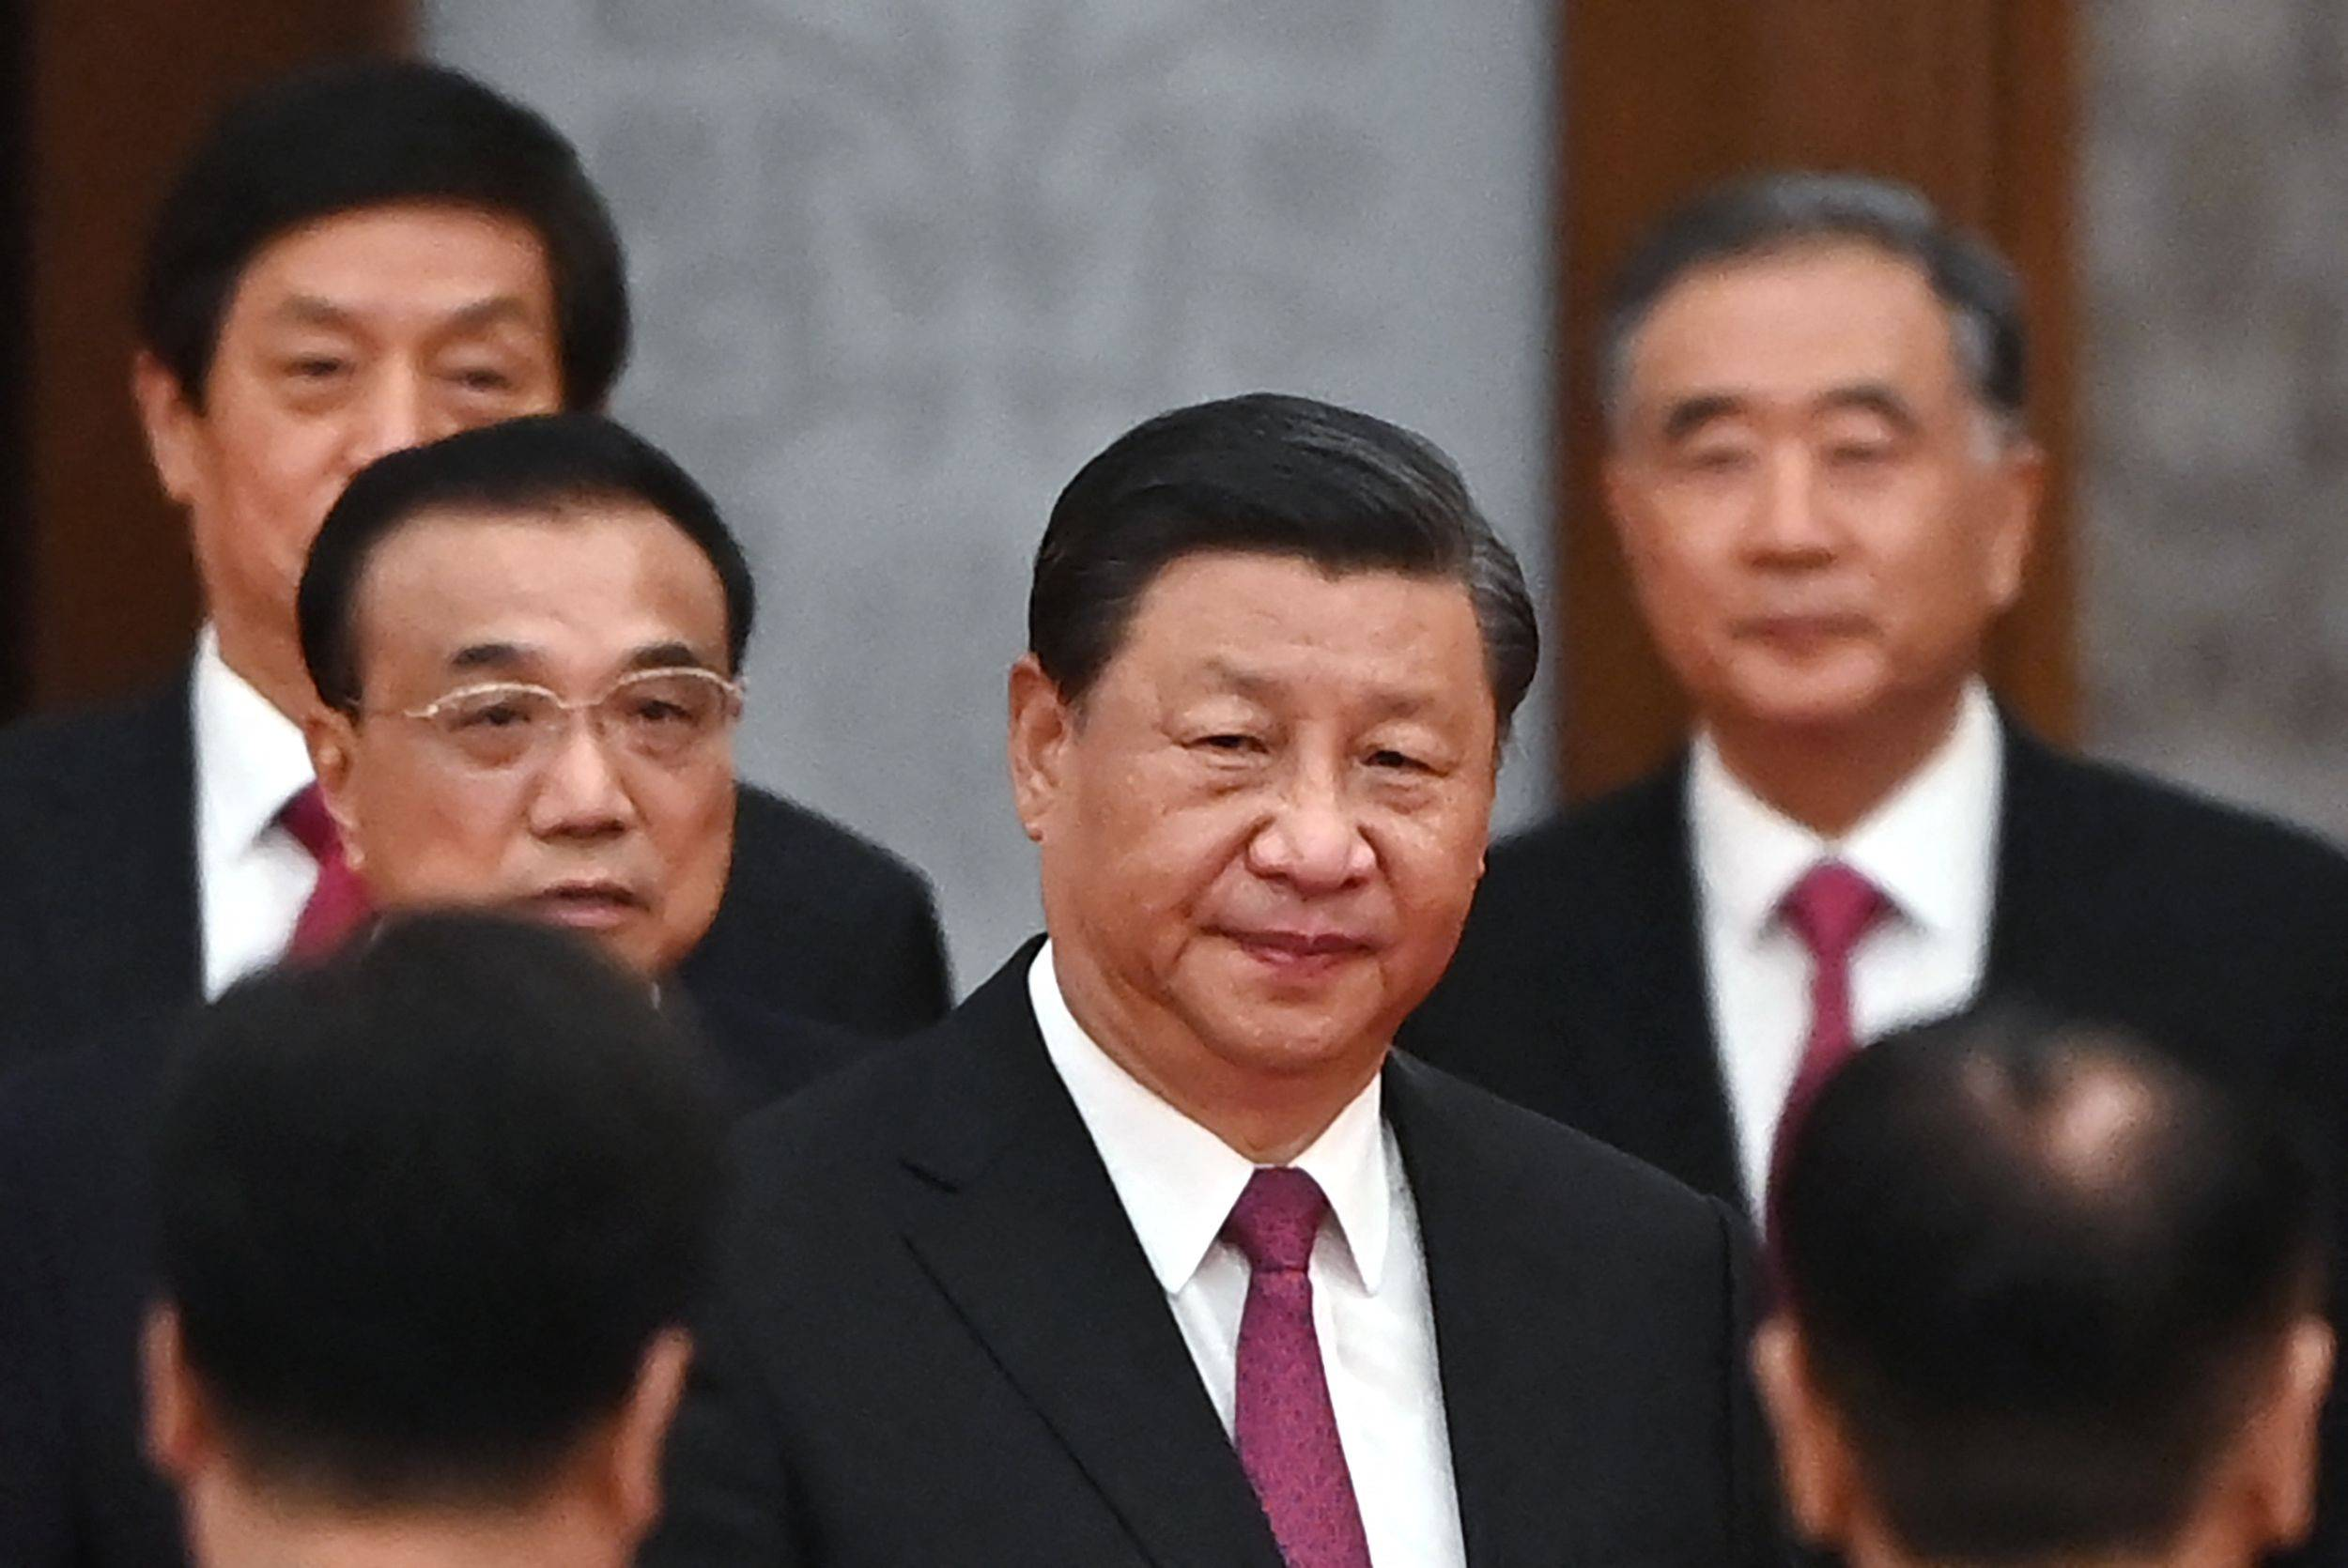 Chinese leader Xi Jinping arrives with Premier Li Keqiang (left) for a reception at Beijing's Great Hall of the People on the eve of China's National Day on Thursday.   AFP-JIJI